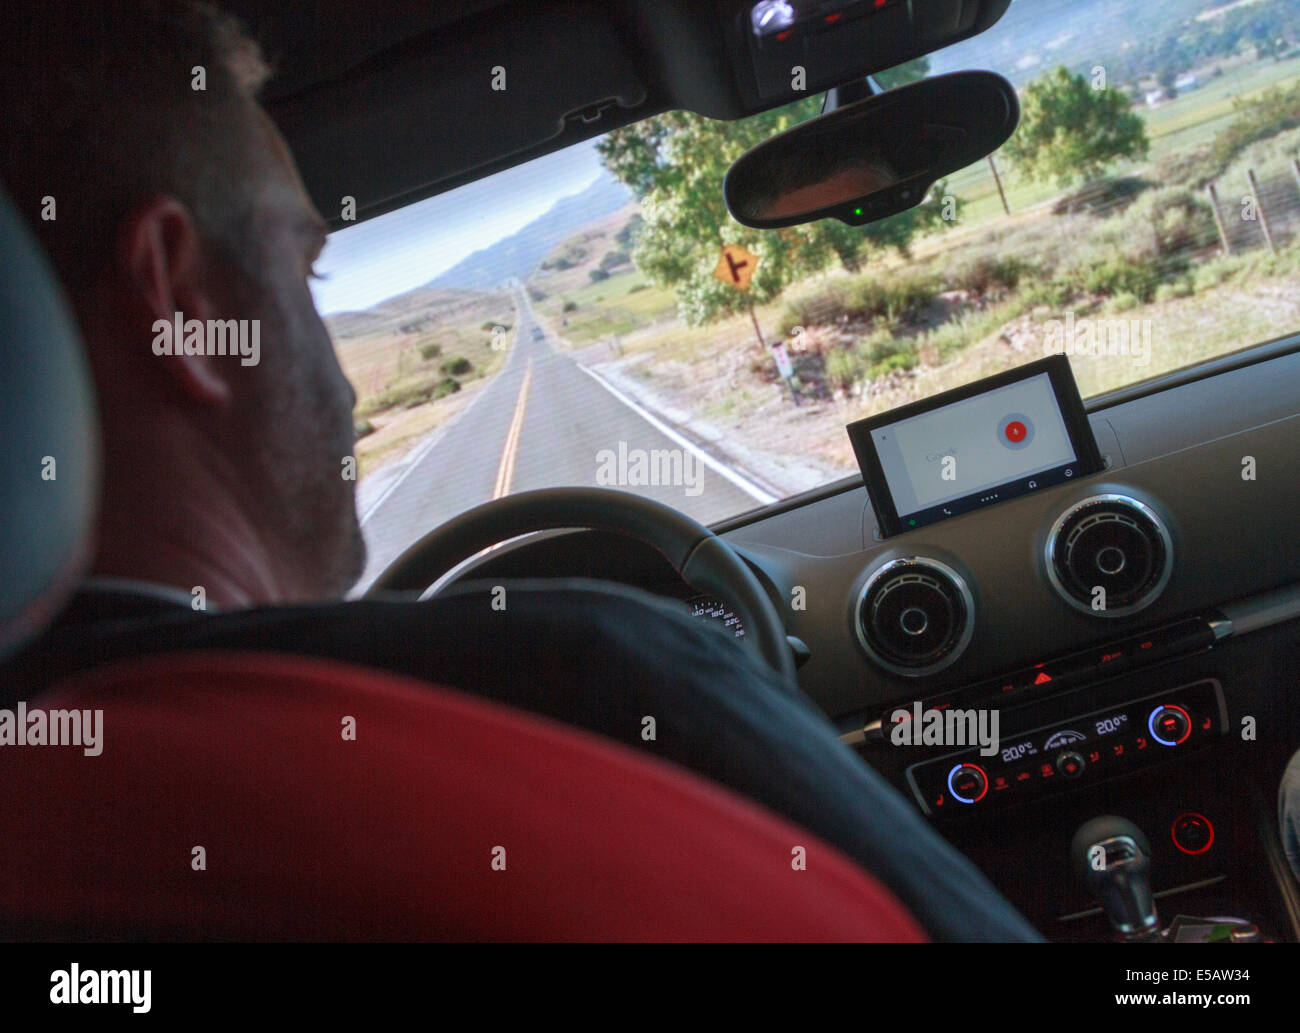 Man demonstrating the use of Android Auto technology device using voice commands to navigate and control entertainment - Stock Image